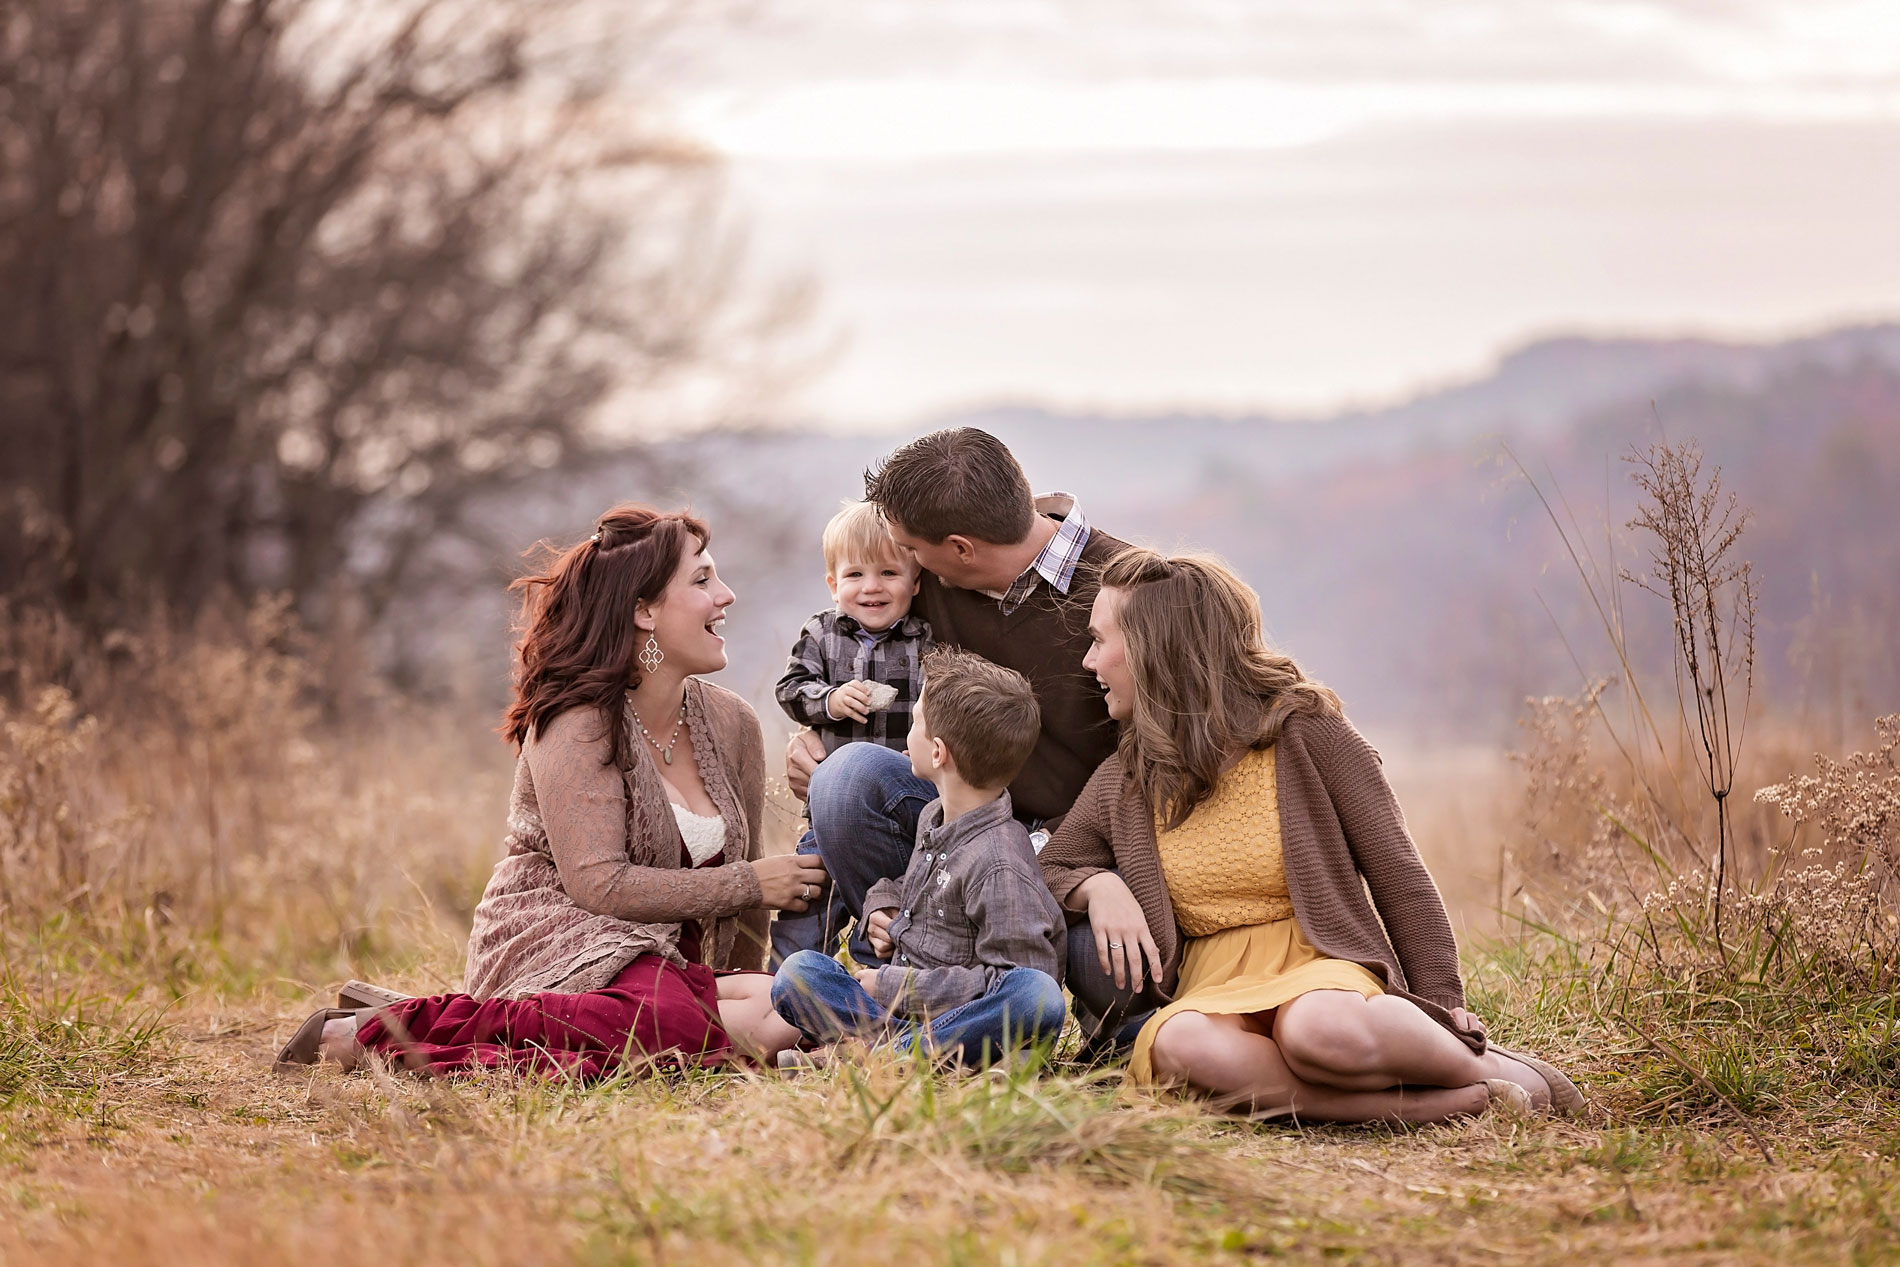 gatlinburg-Pigeon-Forge-photographer-family-in-mountain-field.jpg